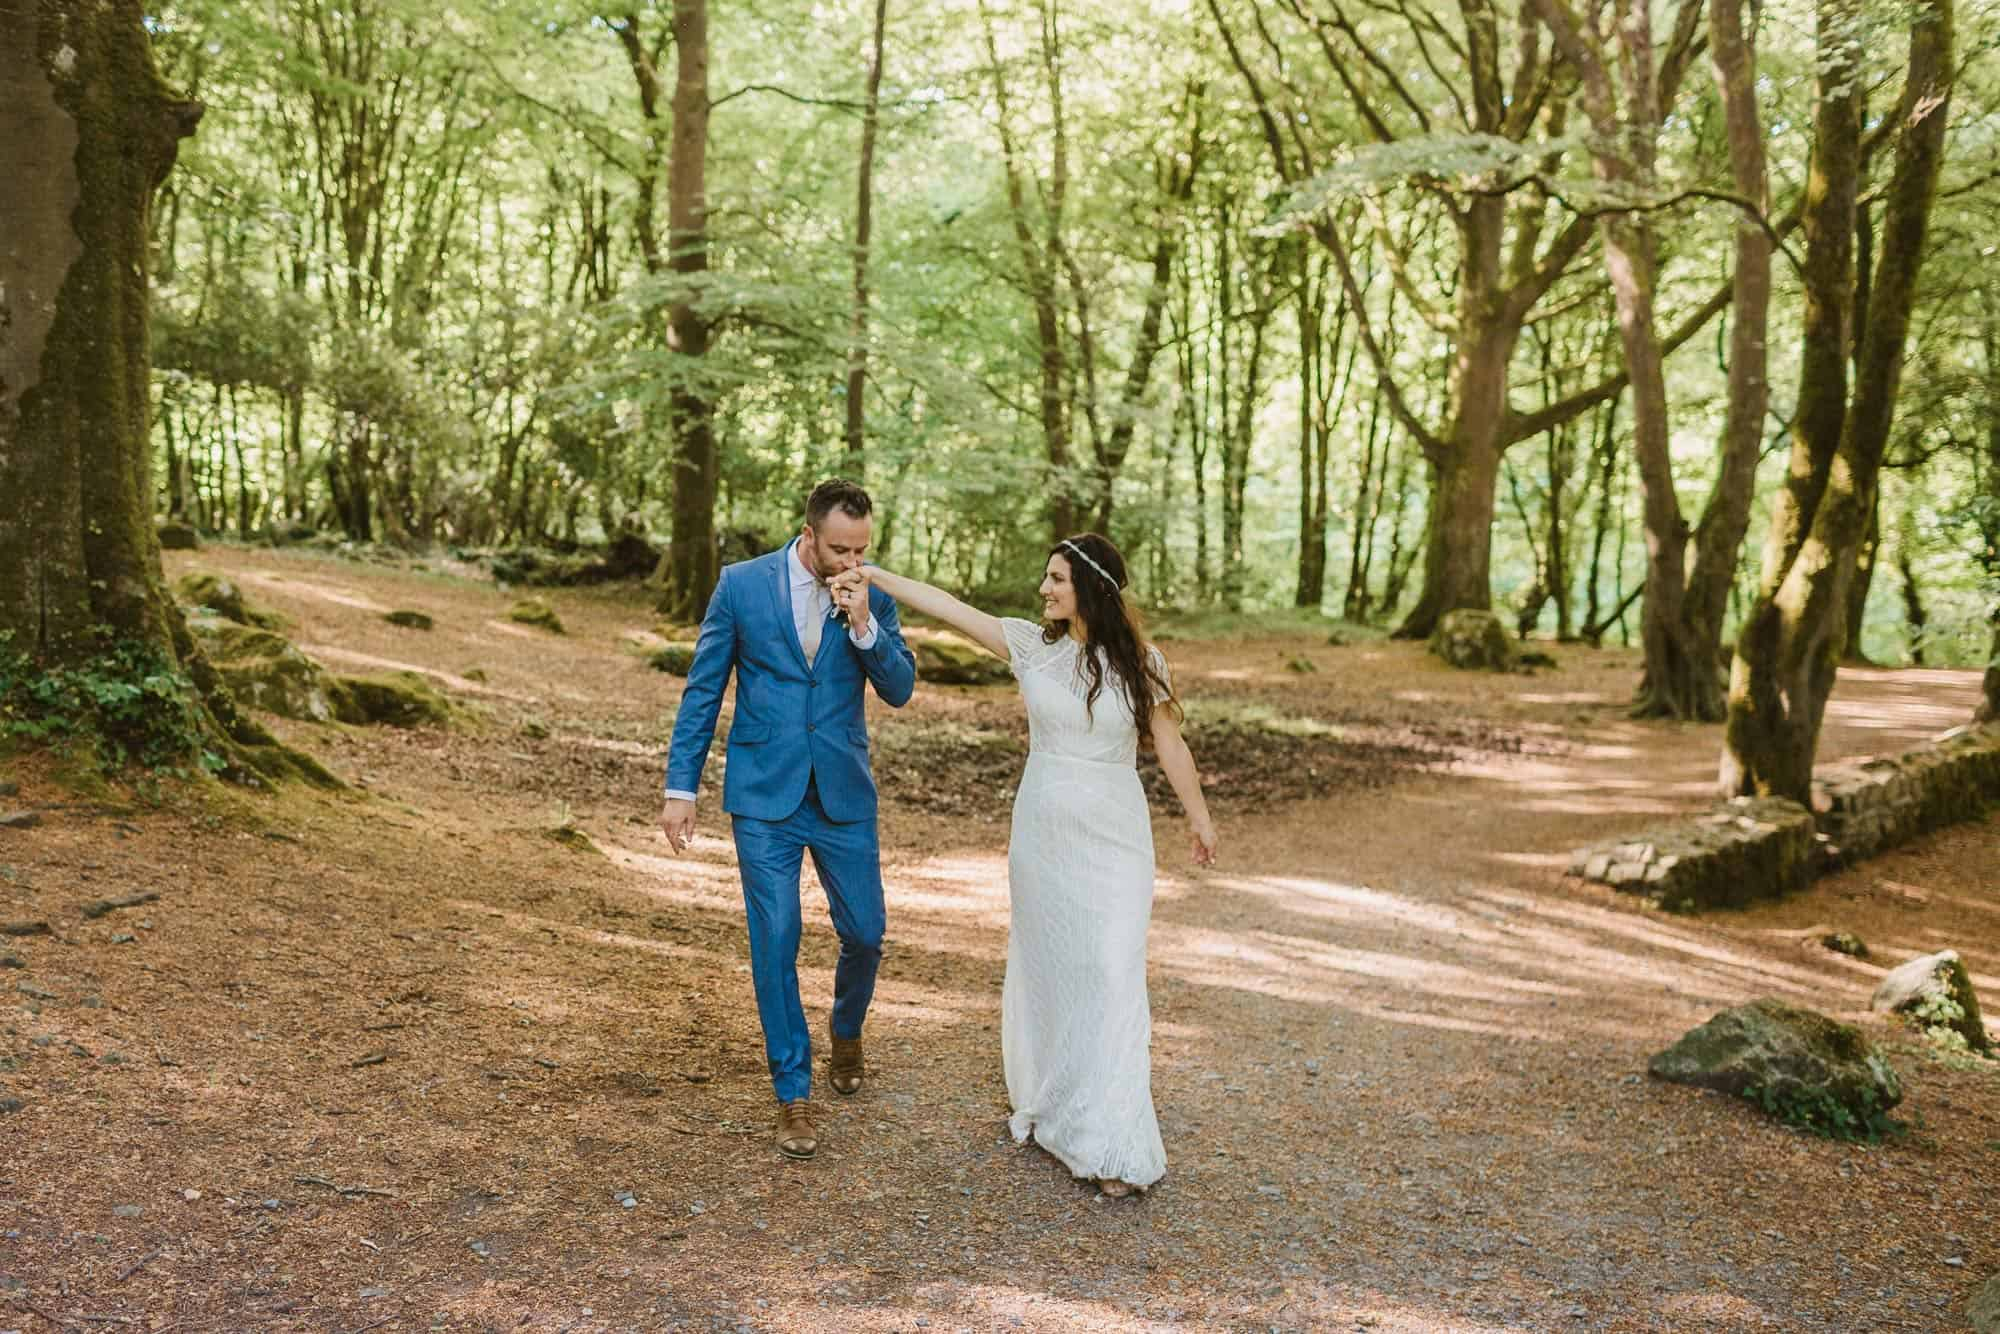 Elopement videographer Ireland, groom kissing brides hand in forest